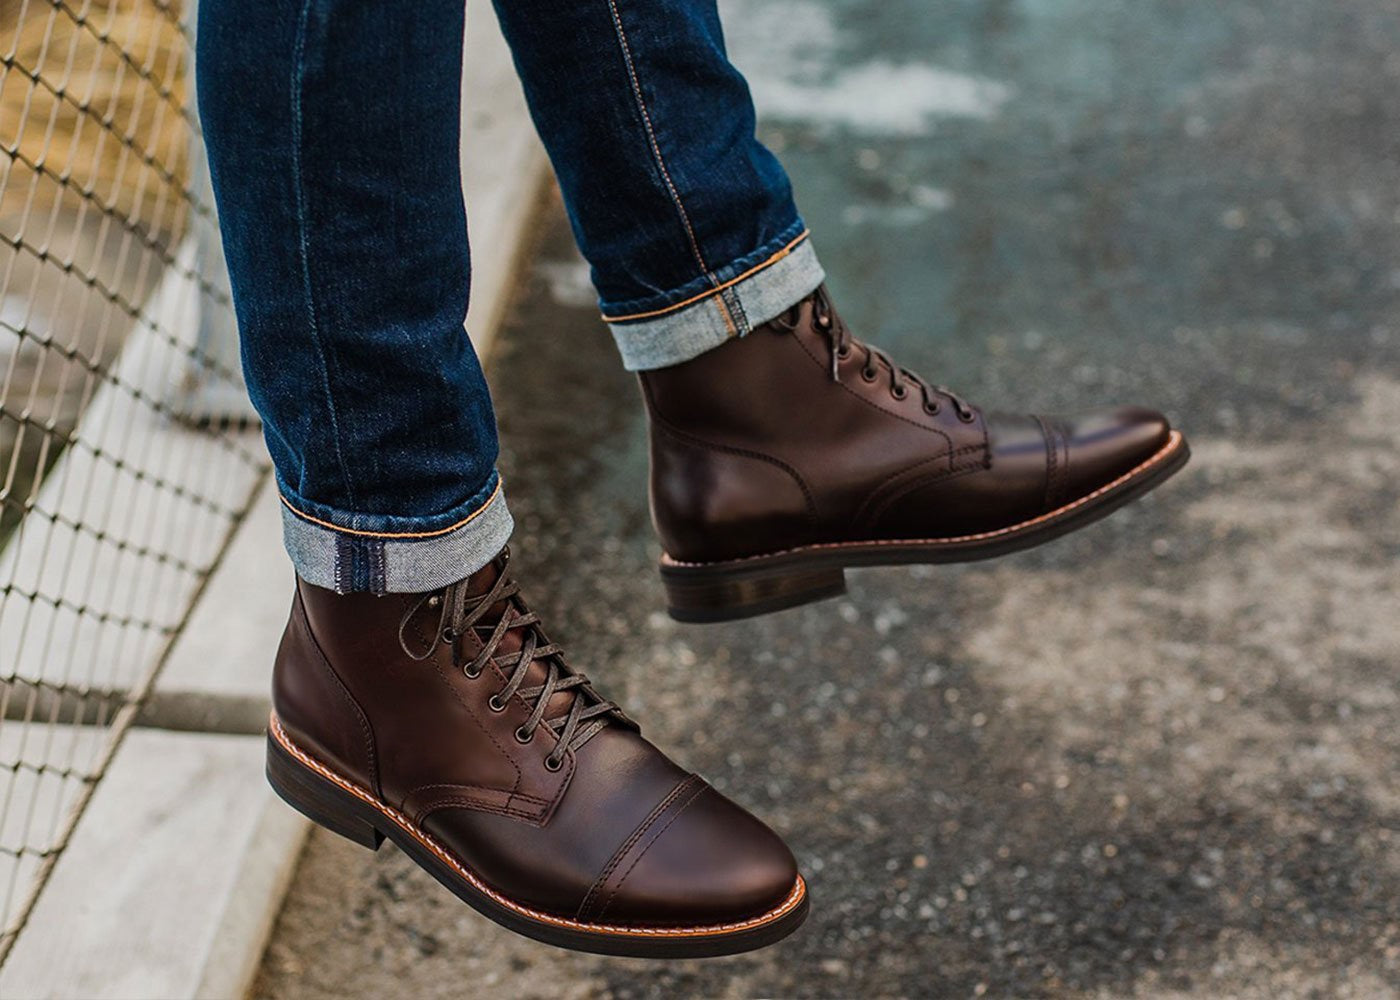 e6b75f712d08 Thursday Boot Company | Handcrafted with Integrity